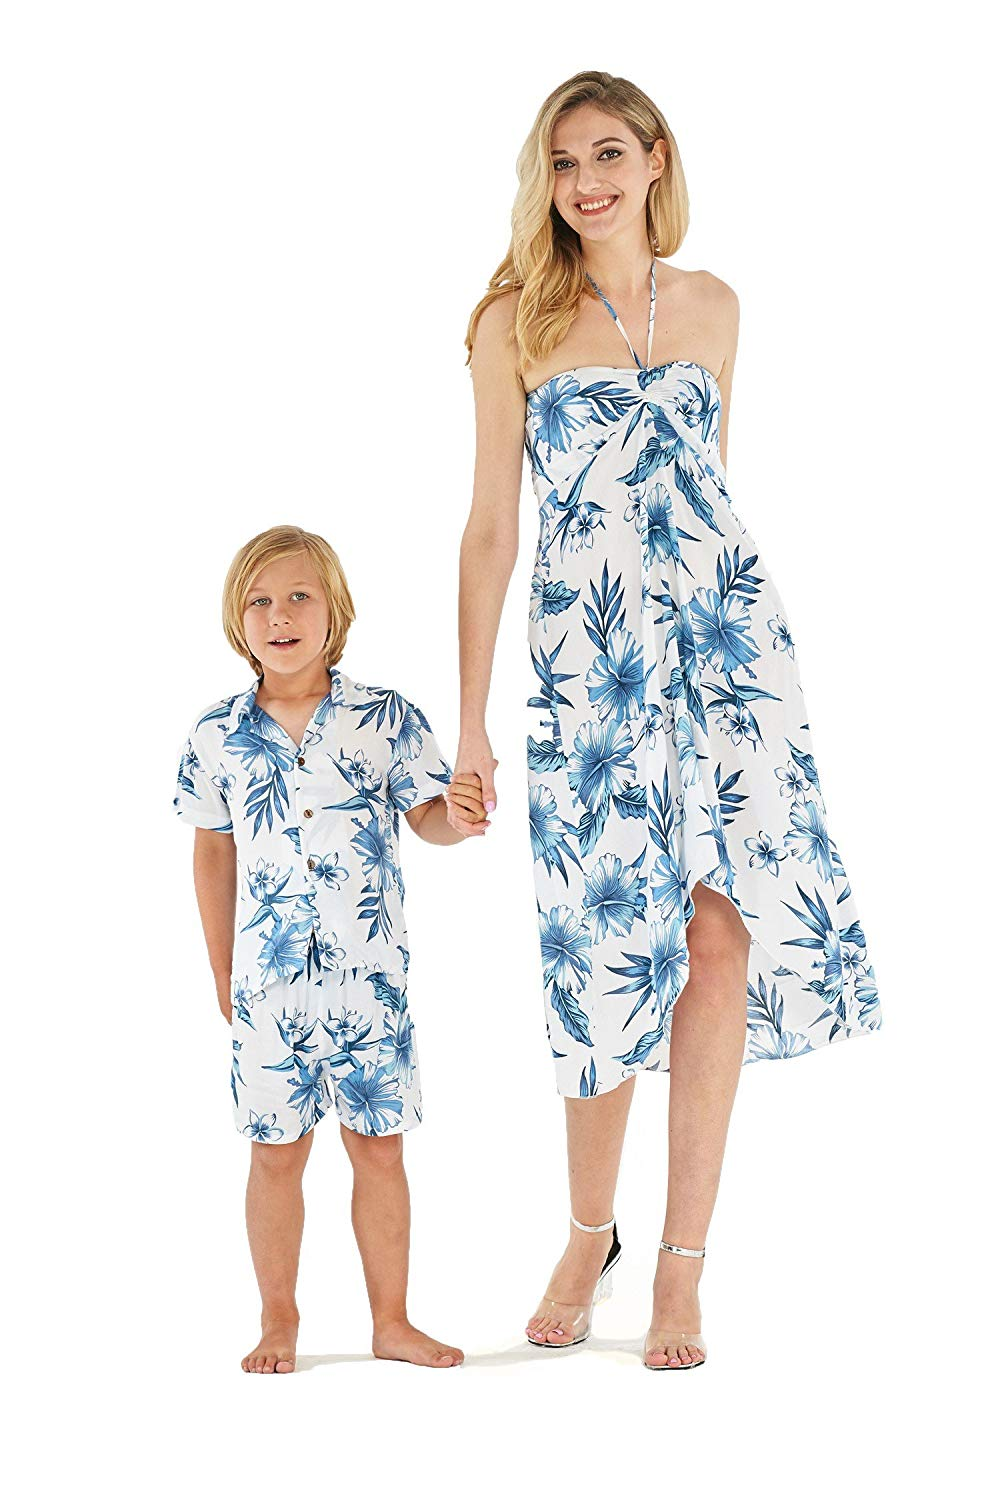 676d657a9287 Hawaii Hangover Matching Mother Son Hawaiian Luau Outfit Dress Shirt in  Simply Blue Leaves